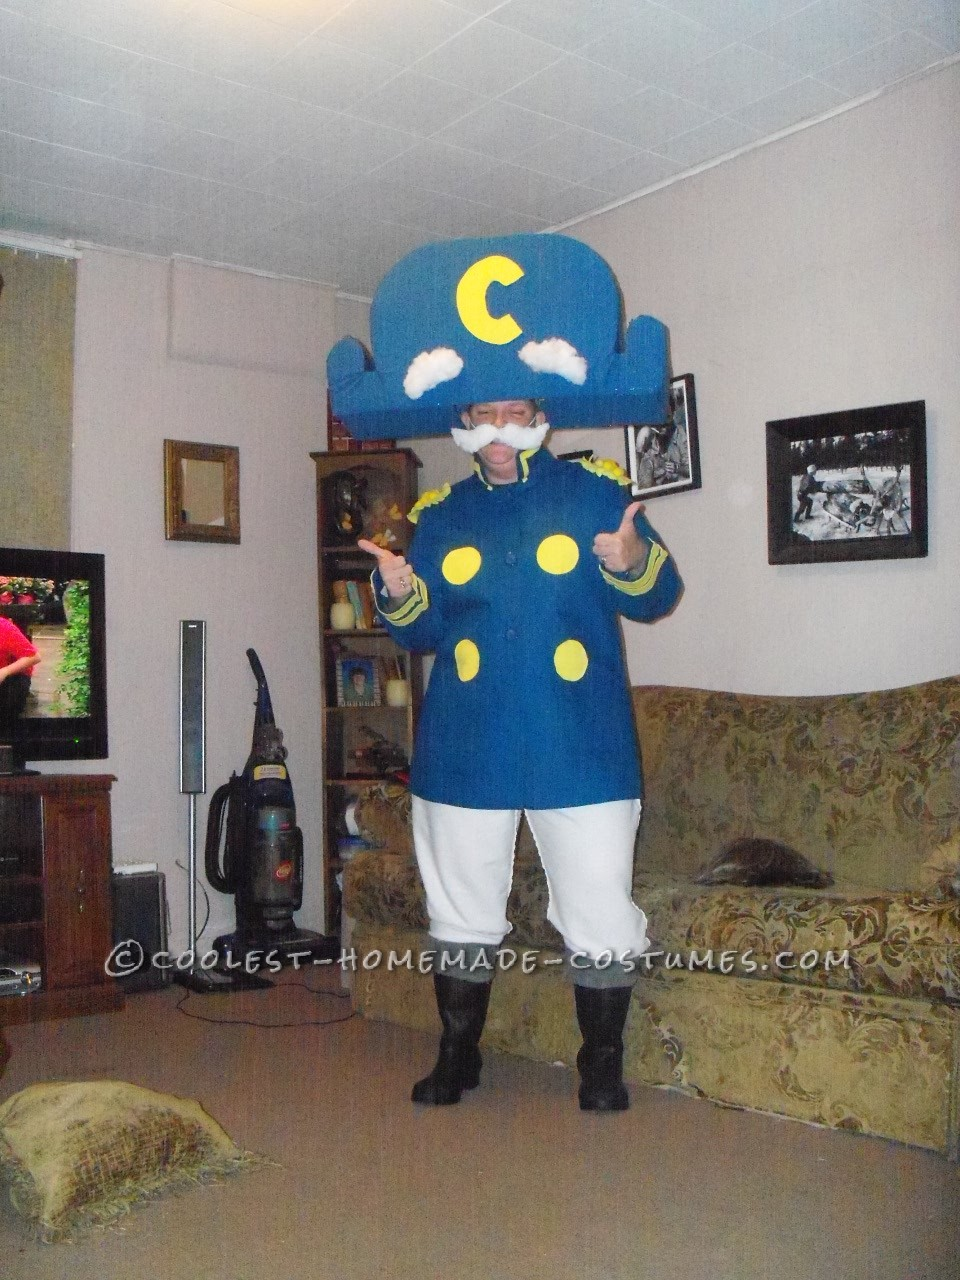 I love making homemade costumes as do my girls. I got this idea from this site. I needed a costume for three parties I was going to and I